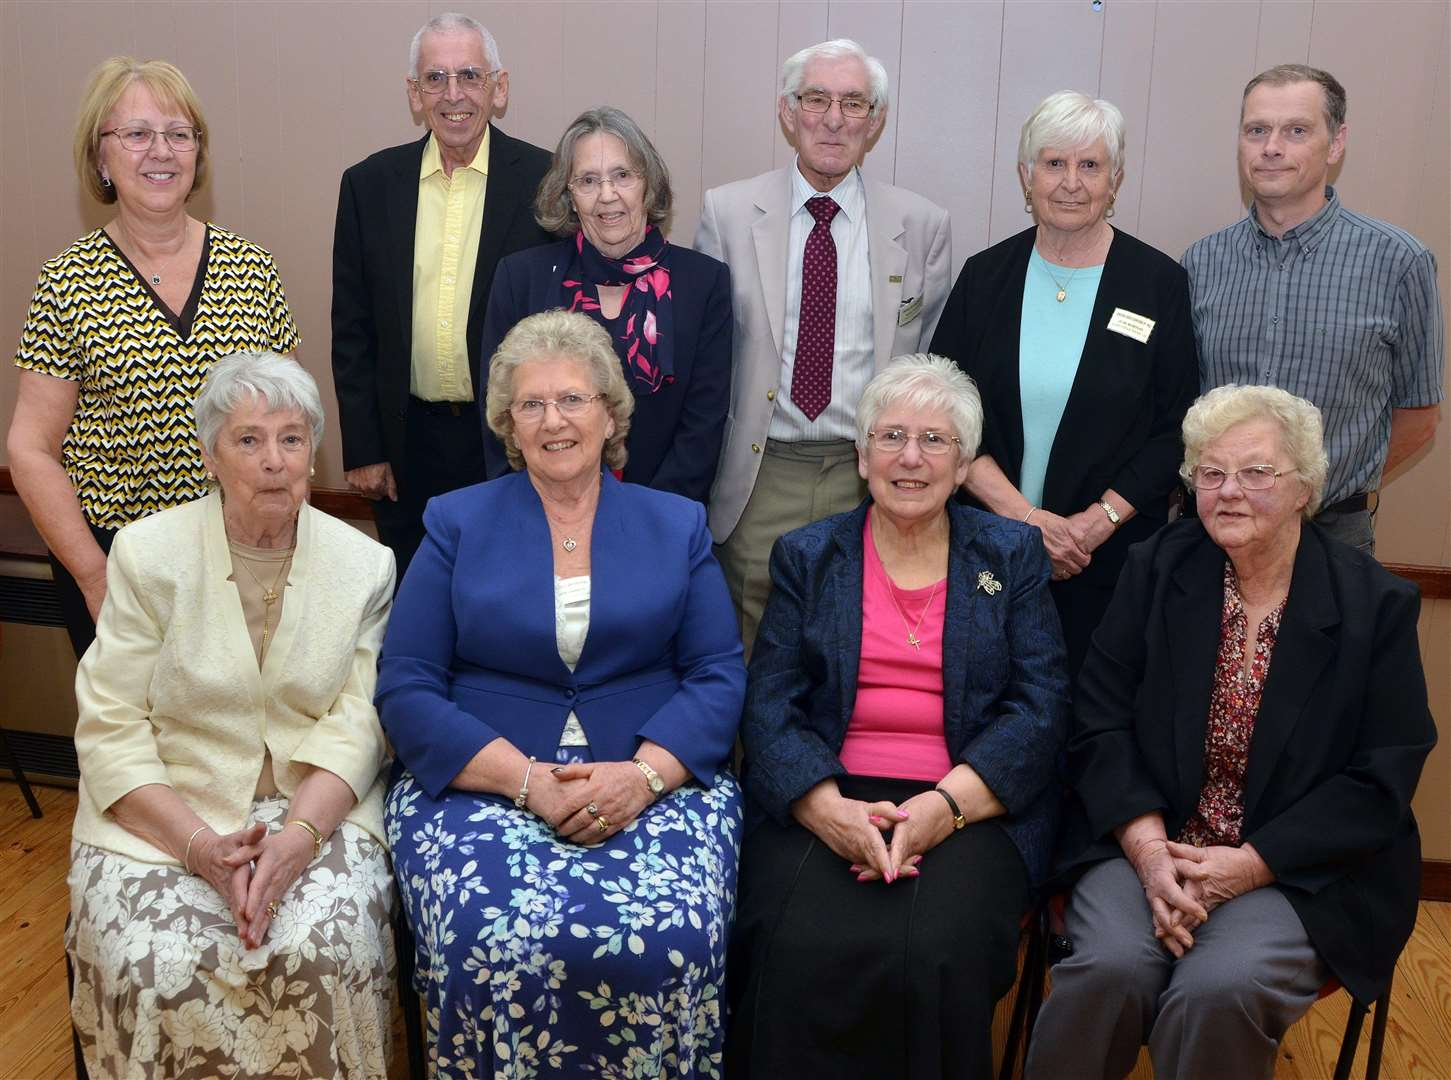 Crowland Cancer Fund committe members (back) Marian Keene, Paul Przyszlak, Barbara Balding, Mike Jackson, June Wortley, Paul Spicer, (front) chairman Val Capes, Eileen Garbutt, Libby Jackson and Pat Woodroffe.Photo by Tim Wilson.SG310317-201TW. (2285141)